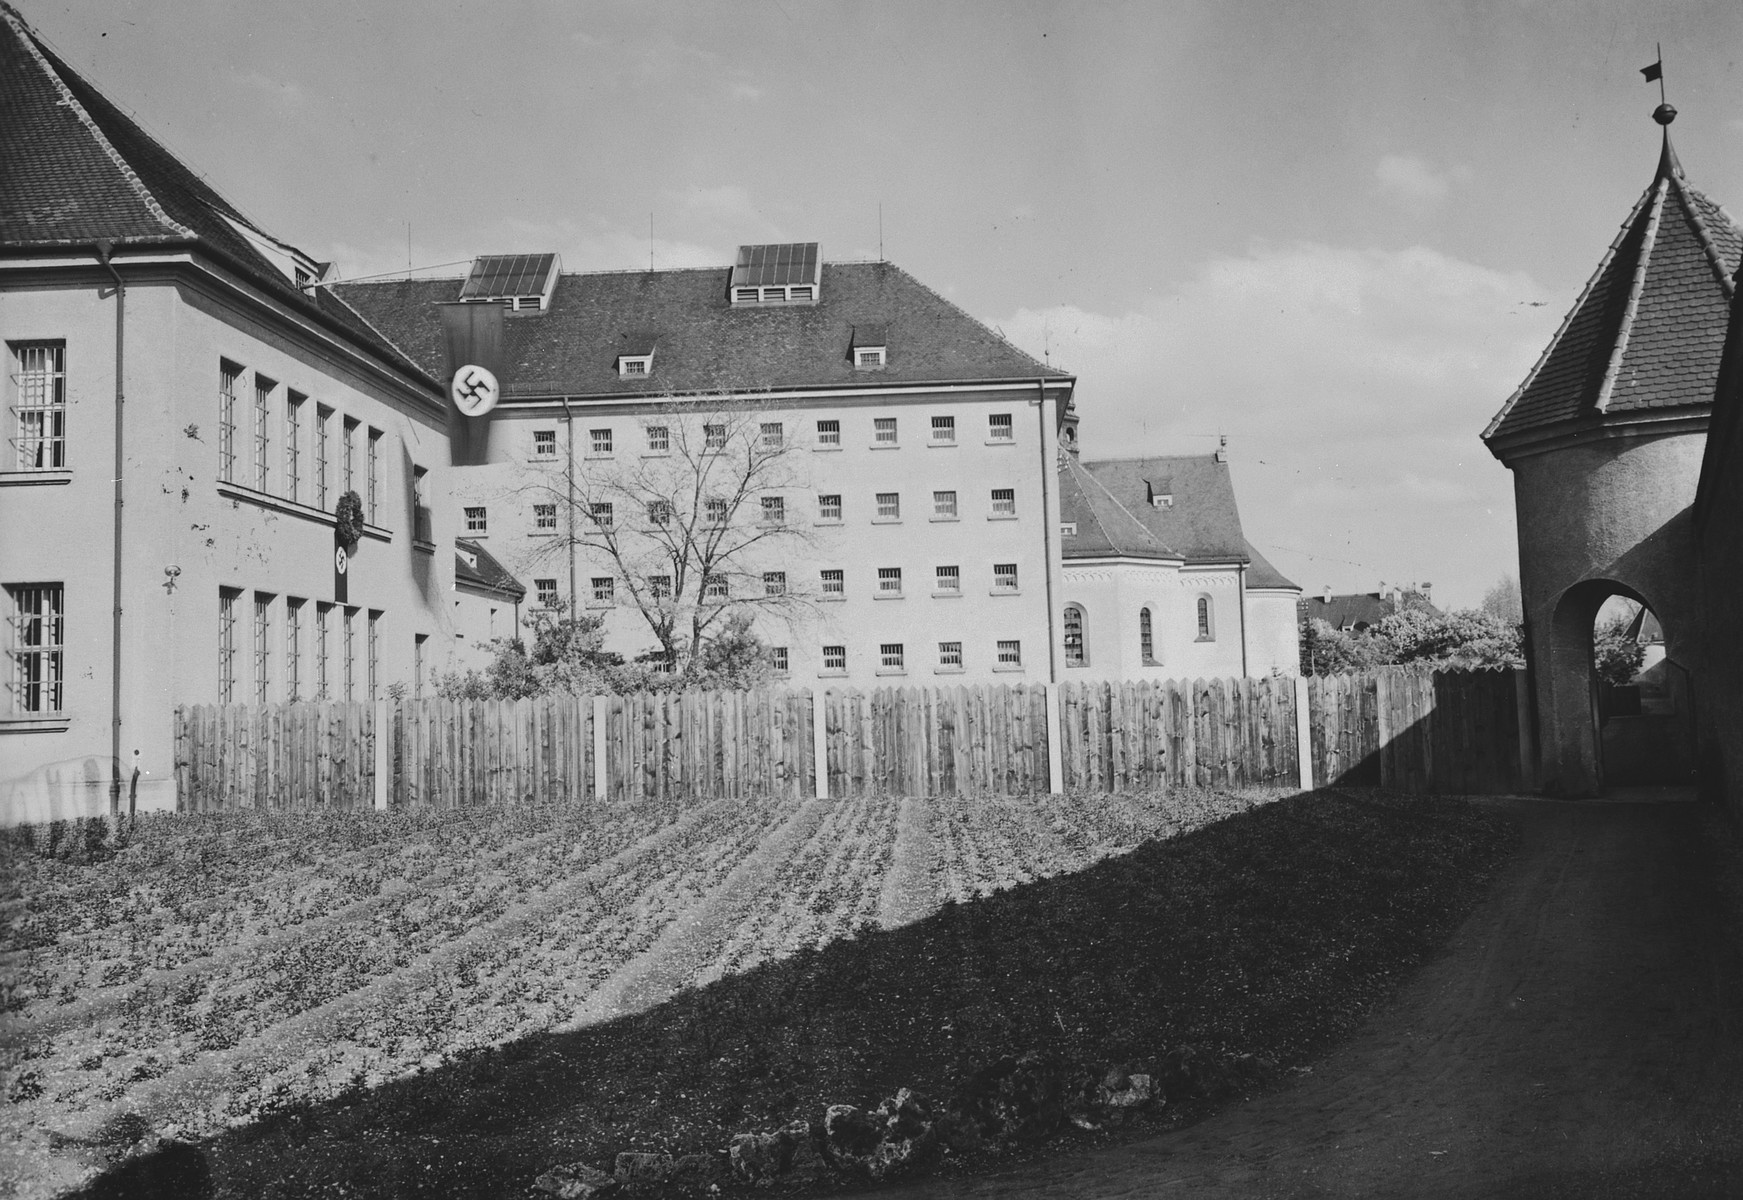 A banner with a large swastika hangs from the roof the Landsberg prison.